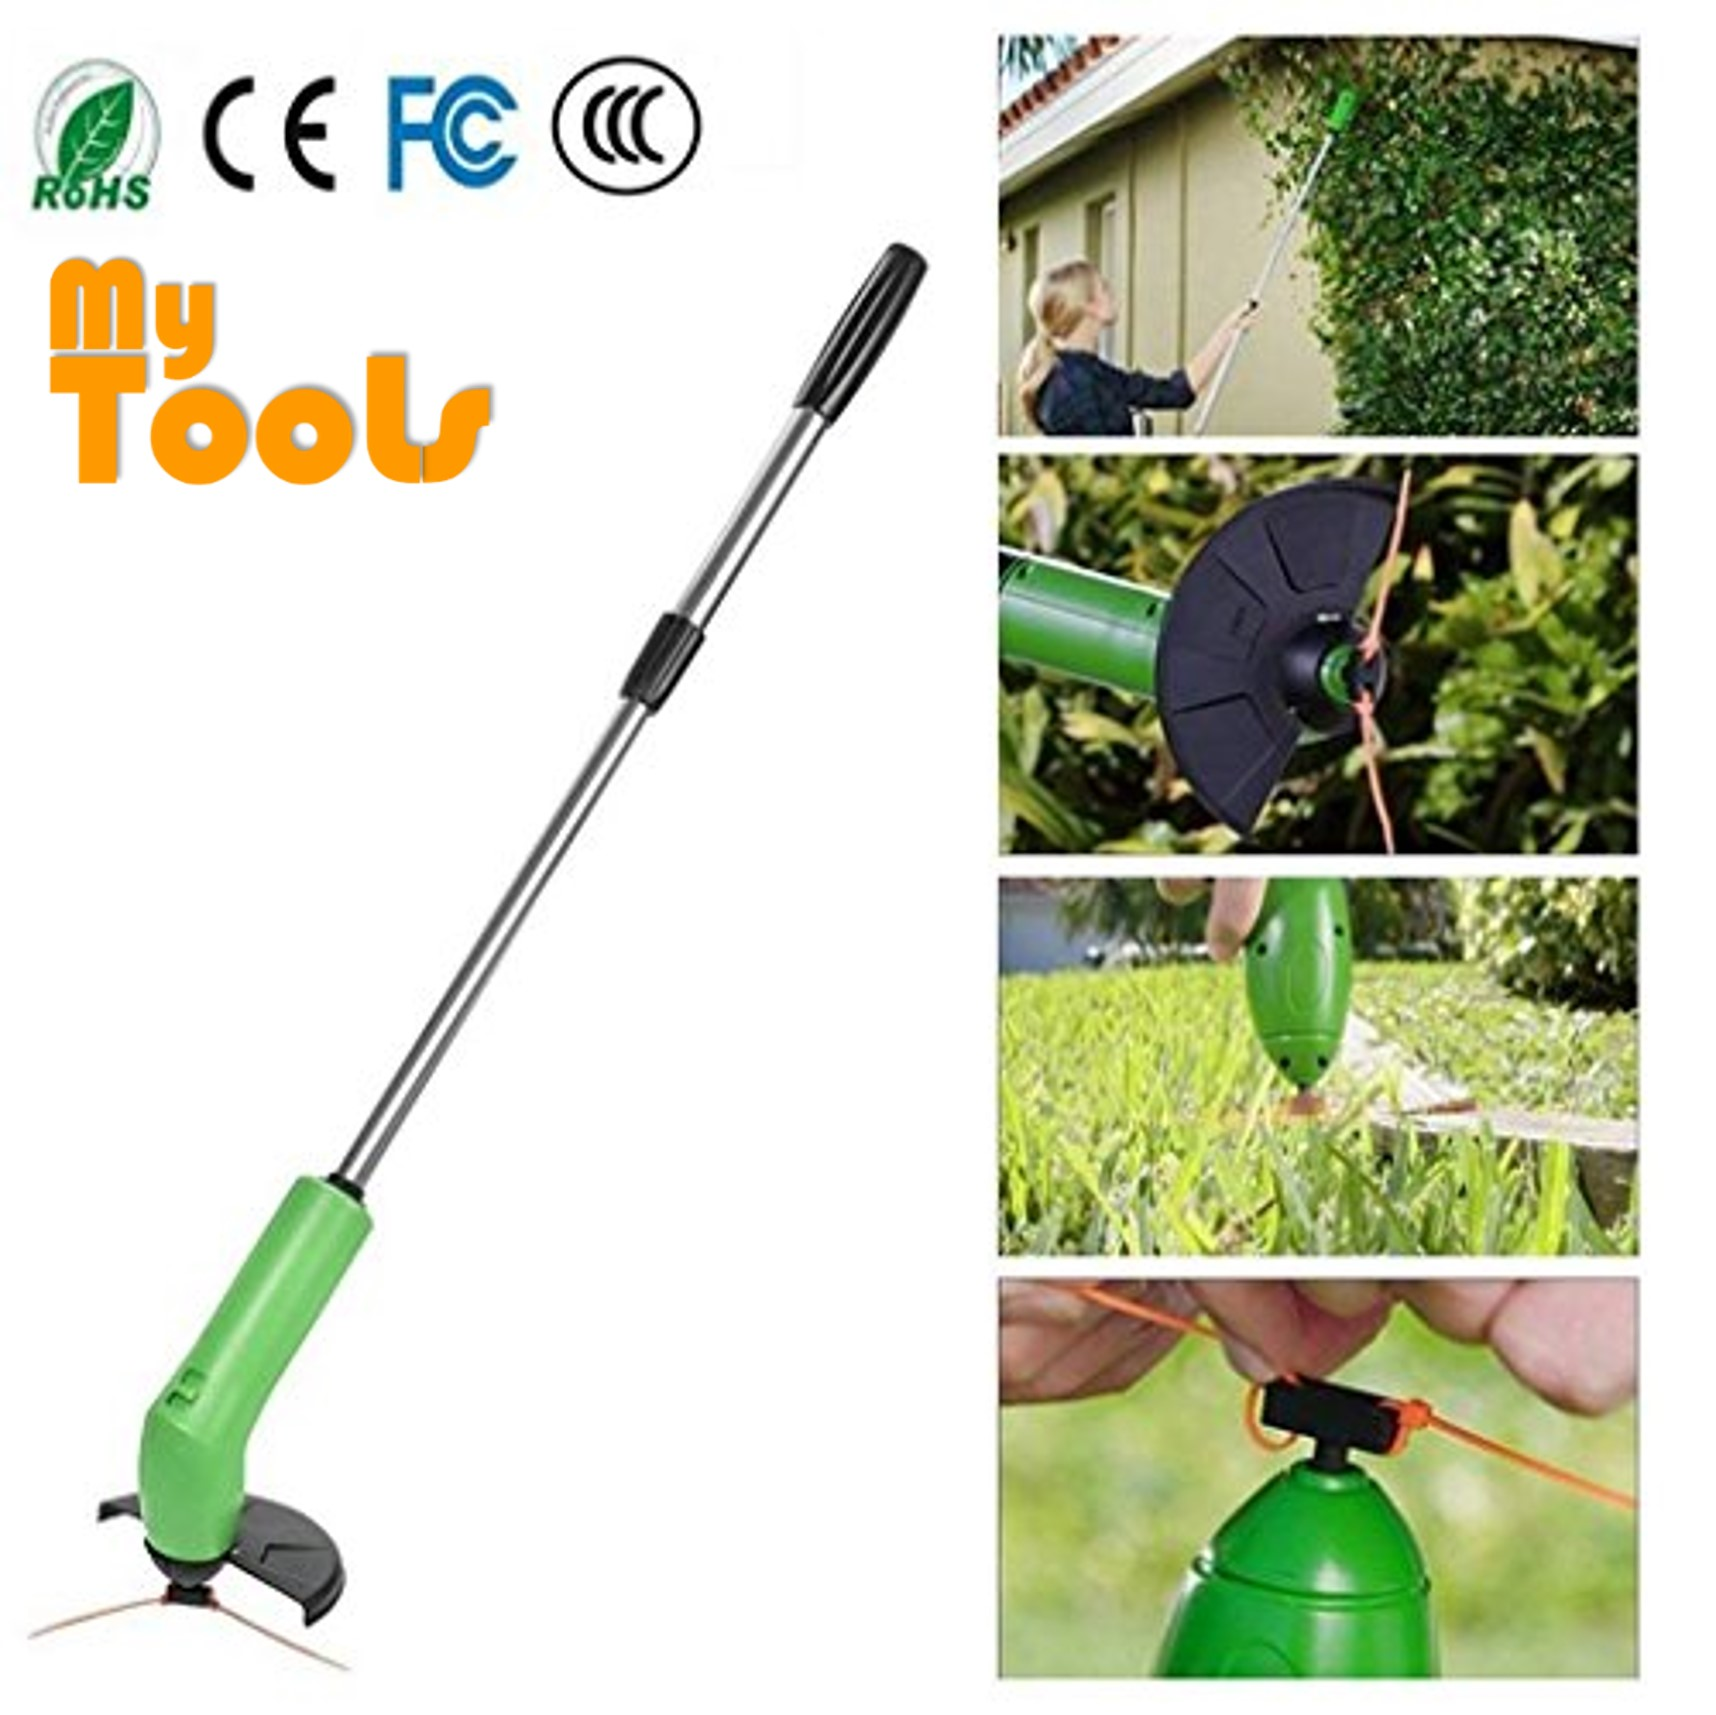 Zip Trim Garden Weed Cutter Cordless Trimmer & Edger Set Works